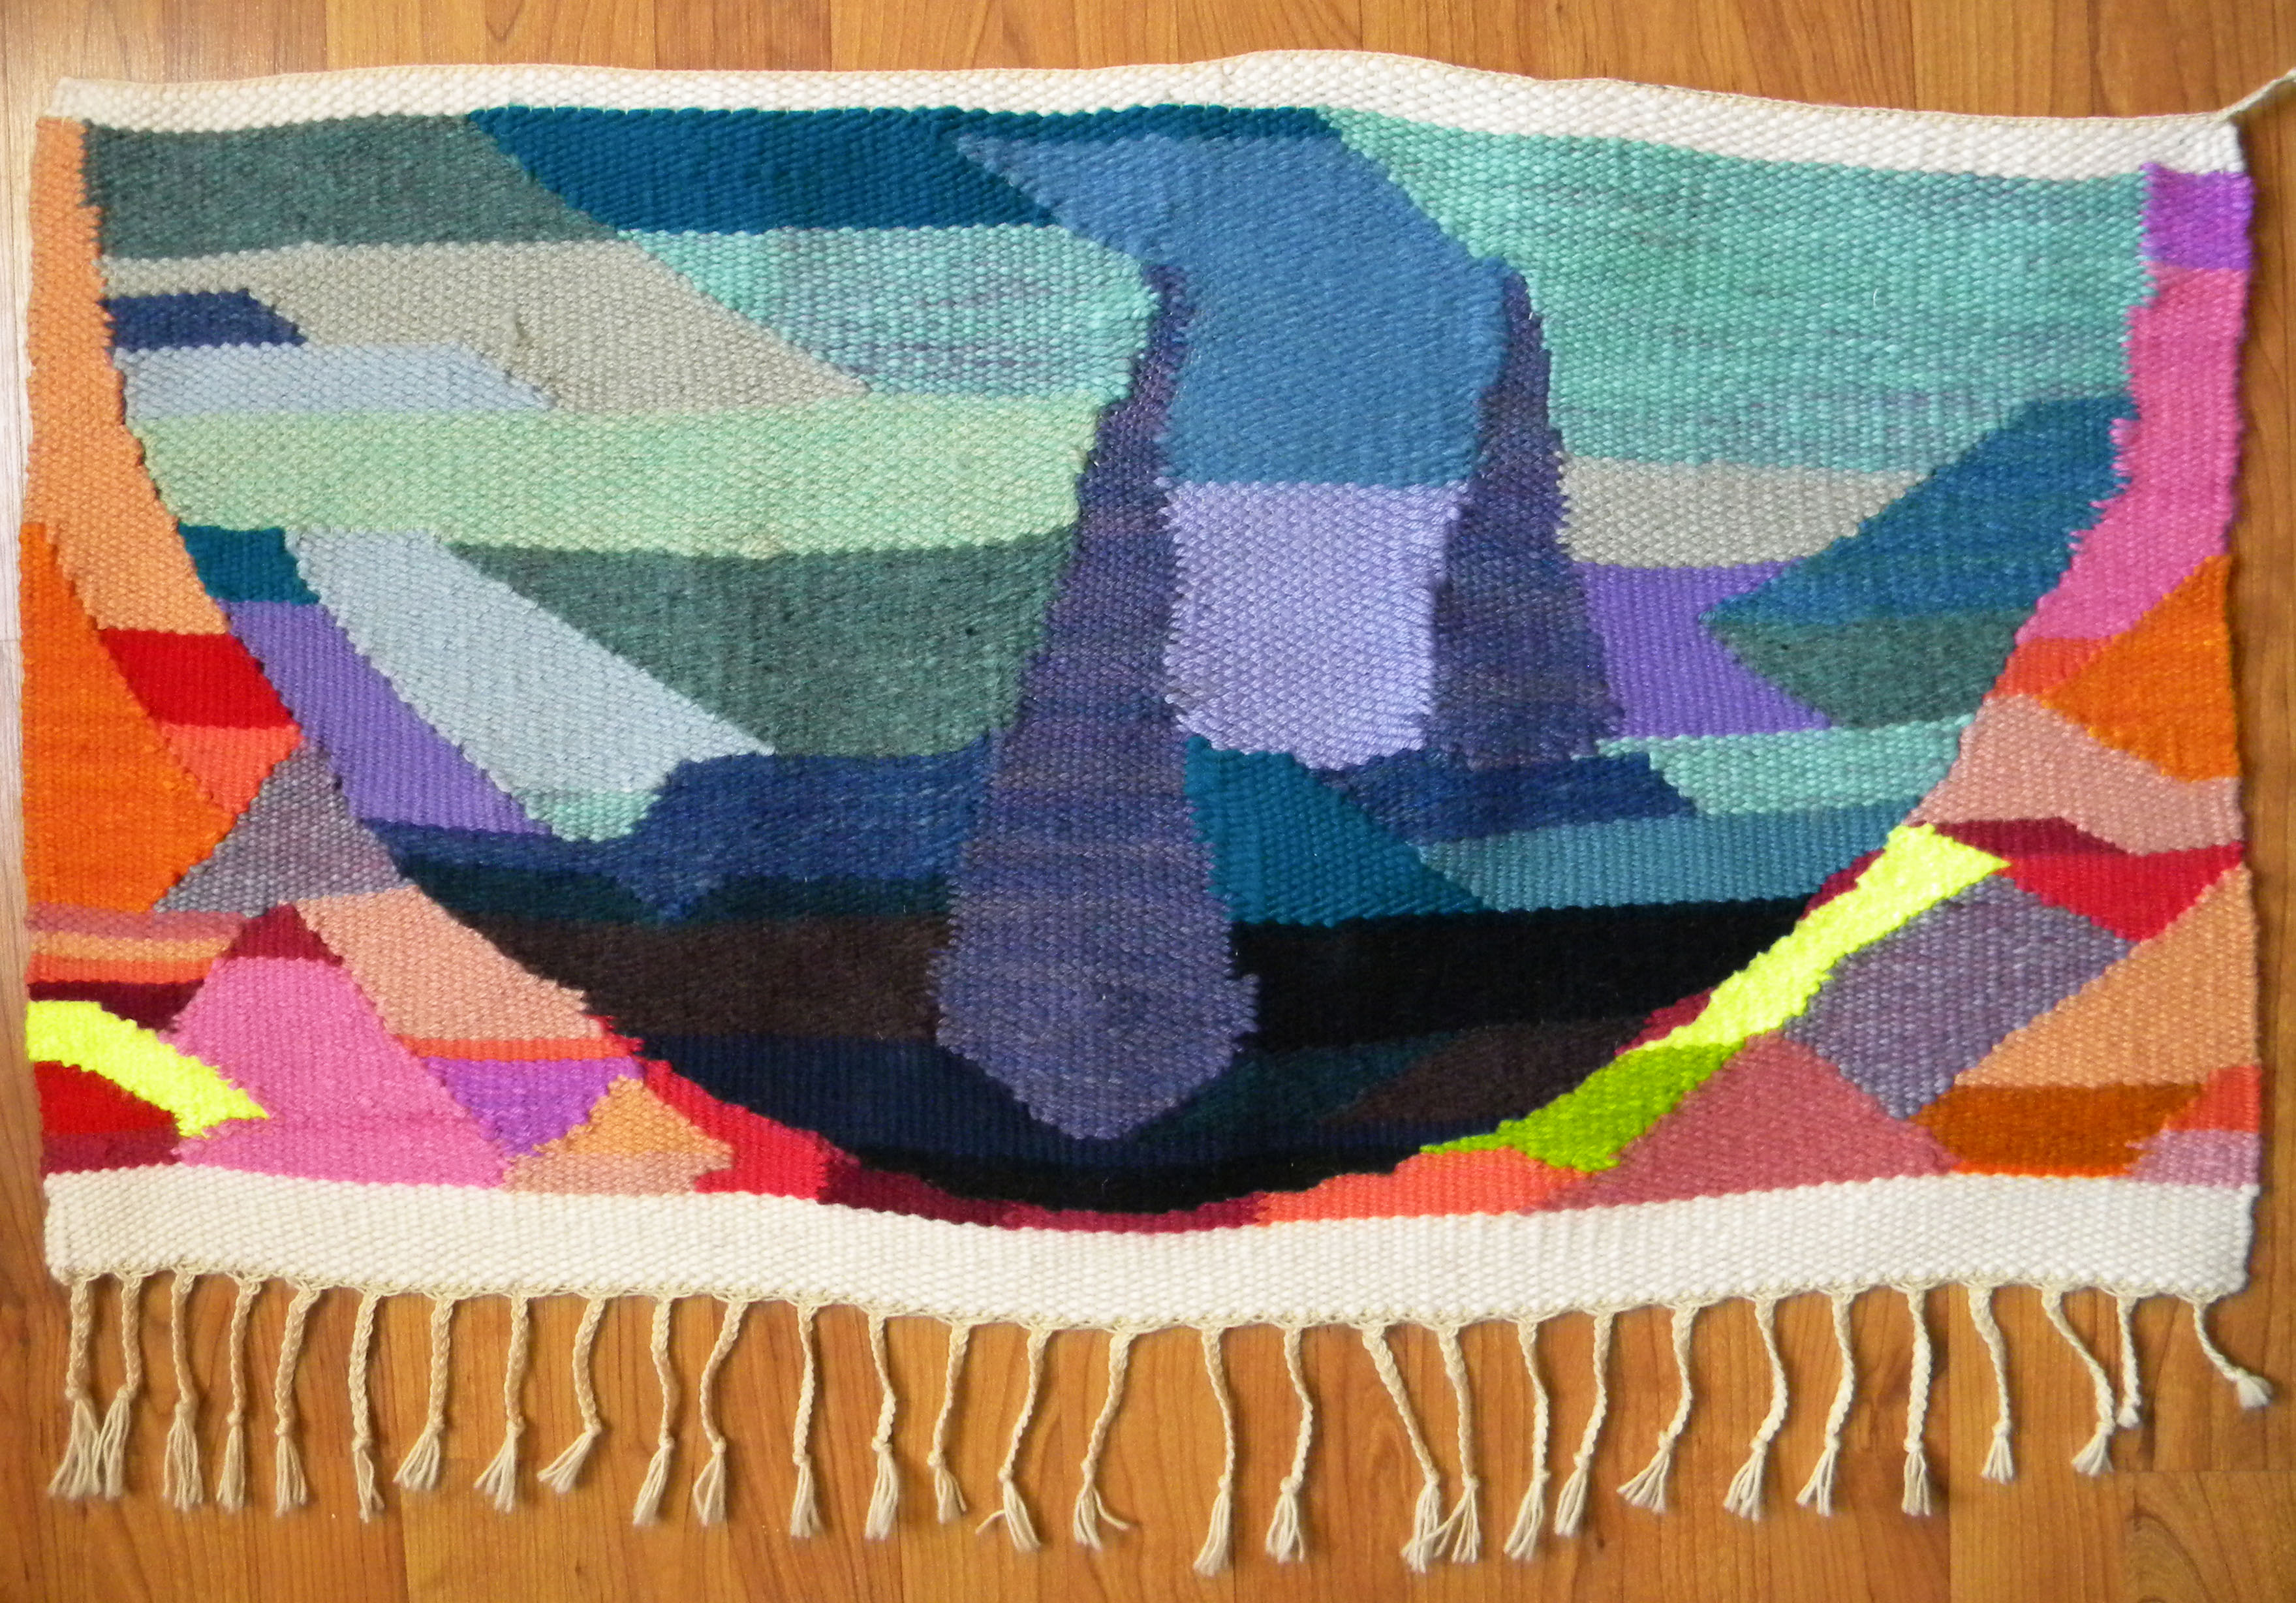 a colorful handwoven tapestry by Clare Nicholls